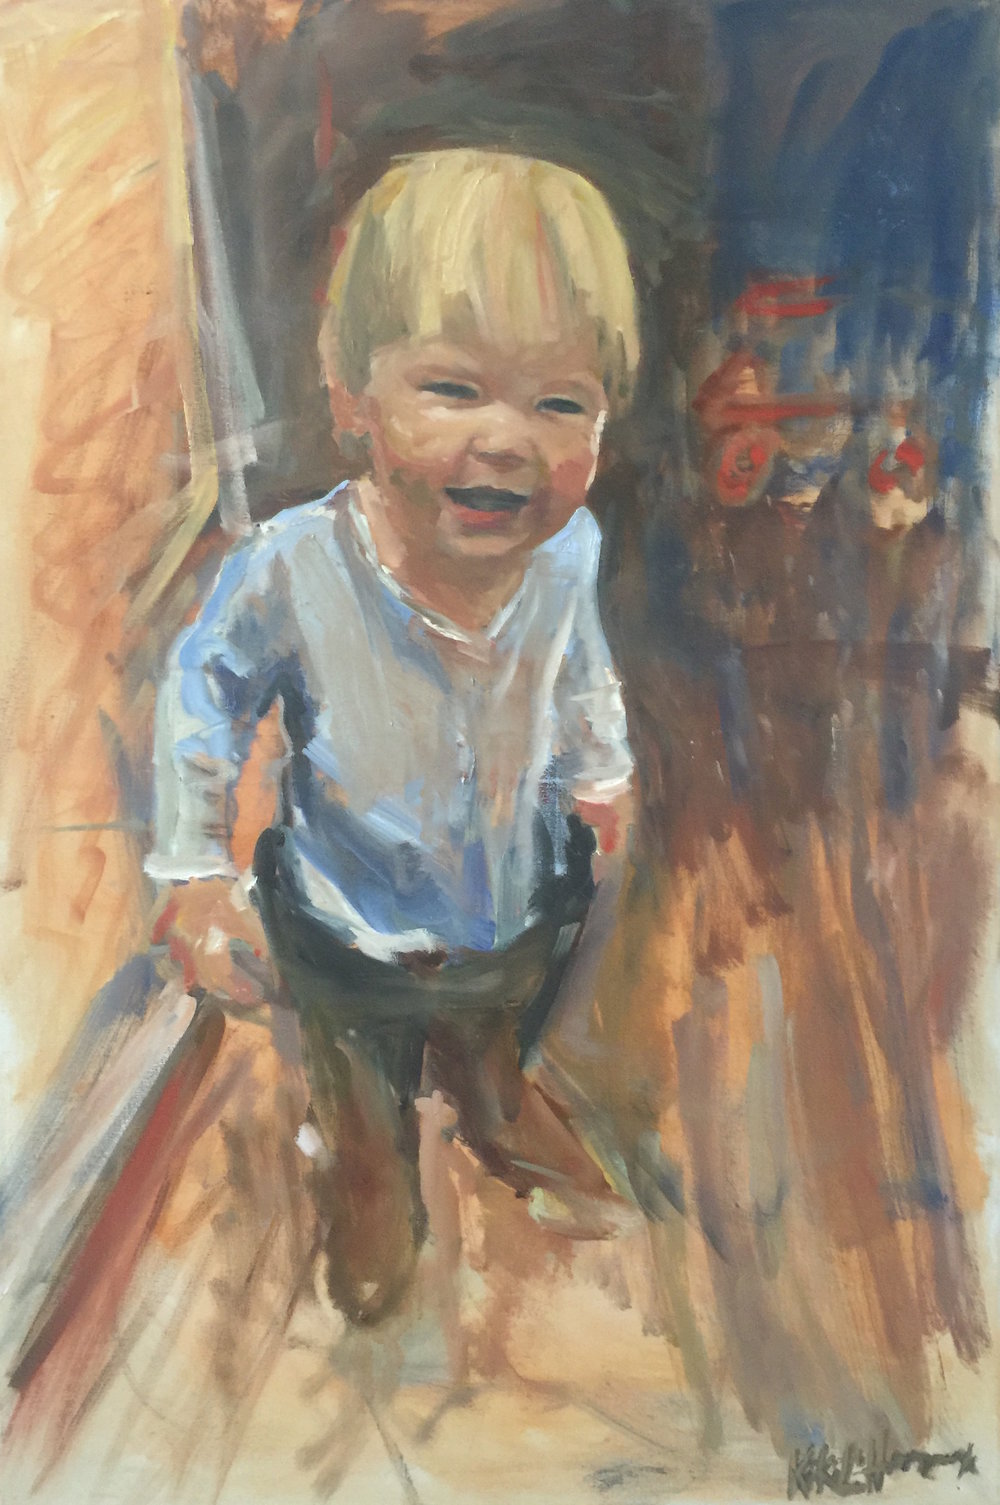 Charlie in Boots, Oil on Canvas, 36 x 24